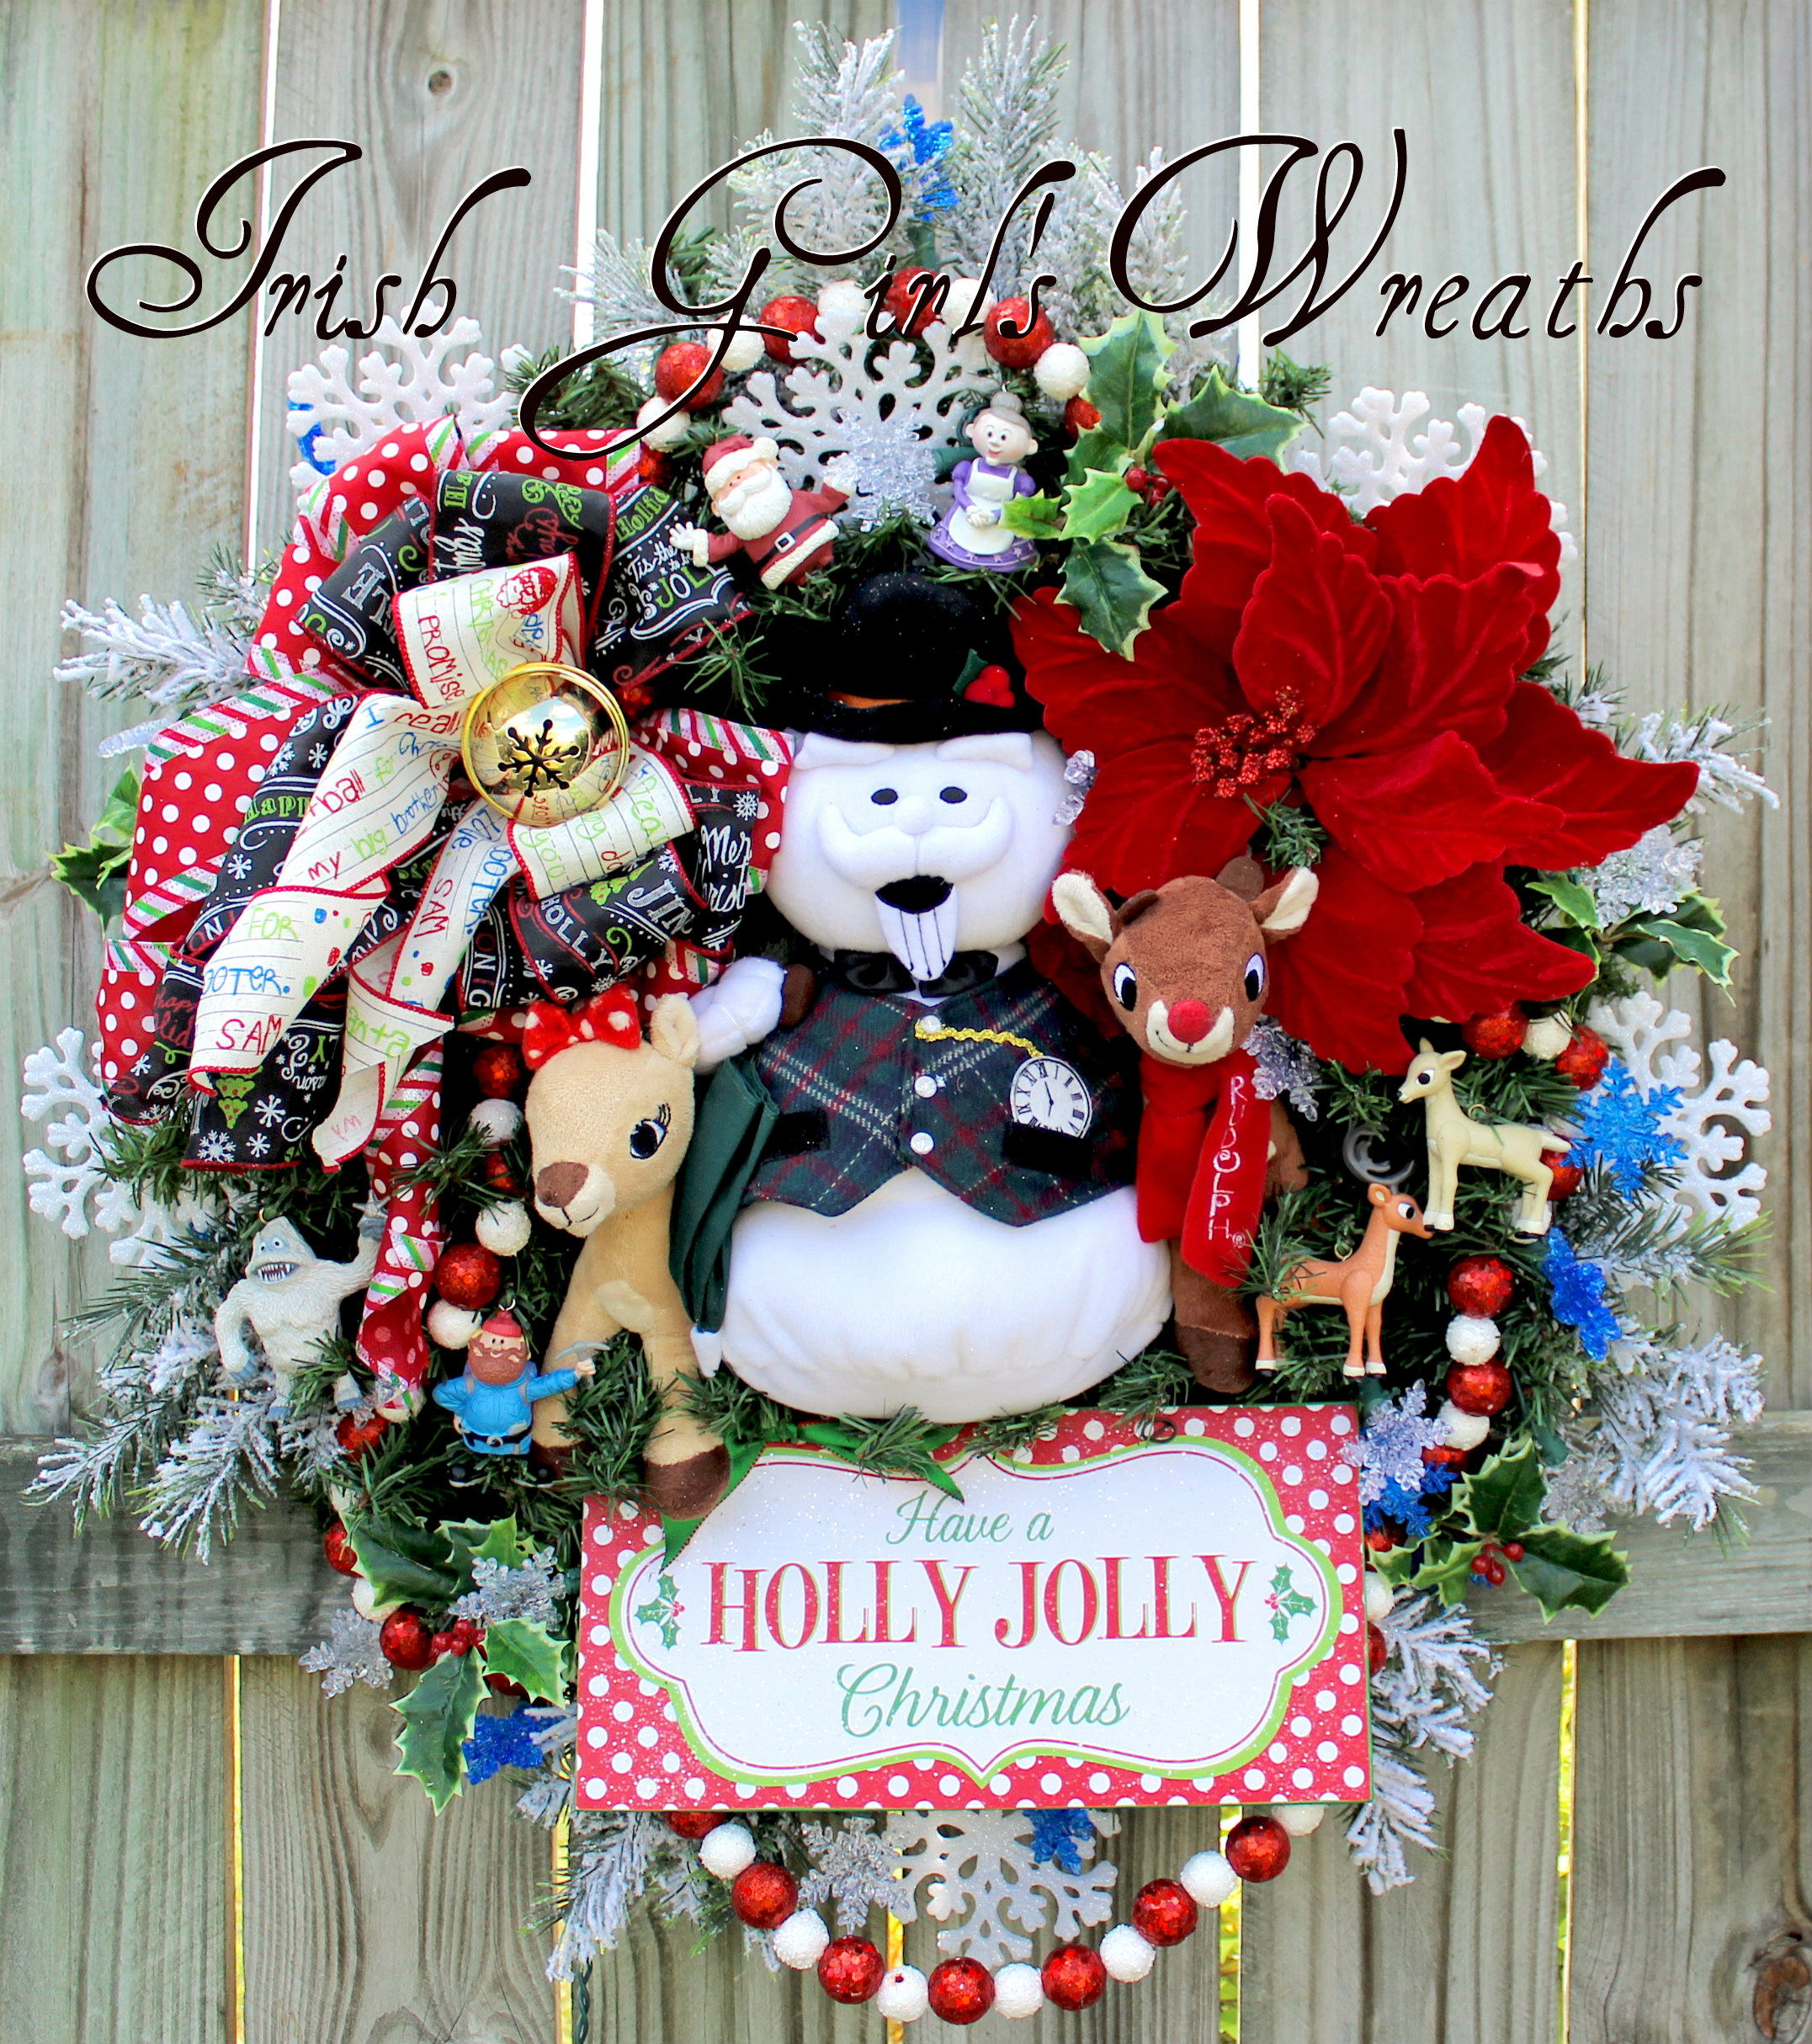 Sam the Snowman Clarice and Rudolph Holly Jolly Christmas Wreath with snowflake lights